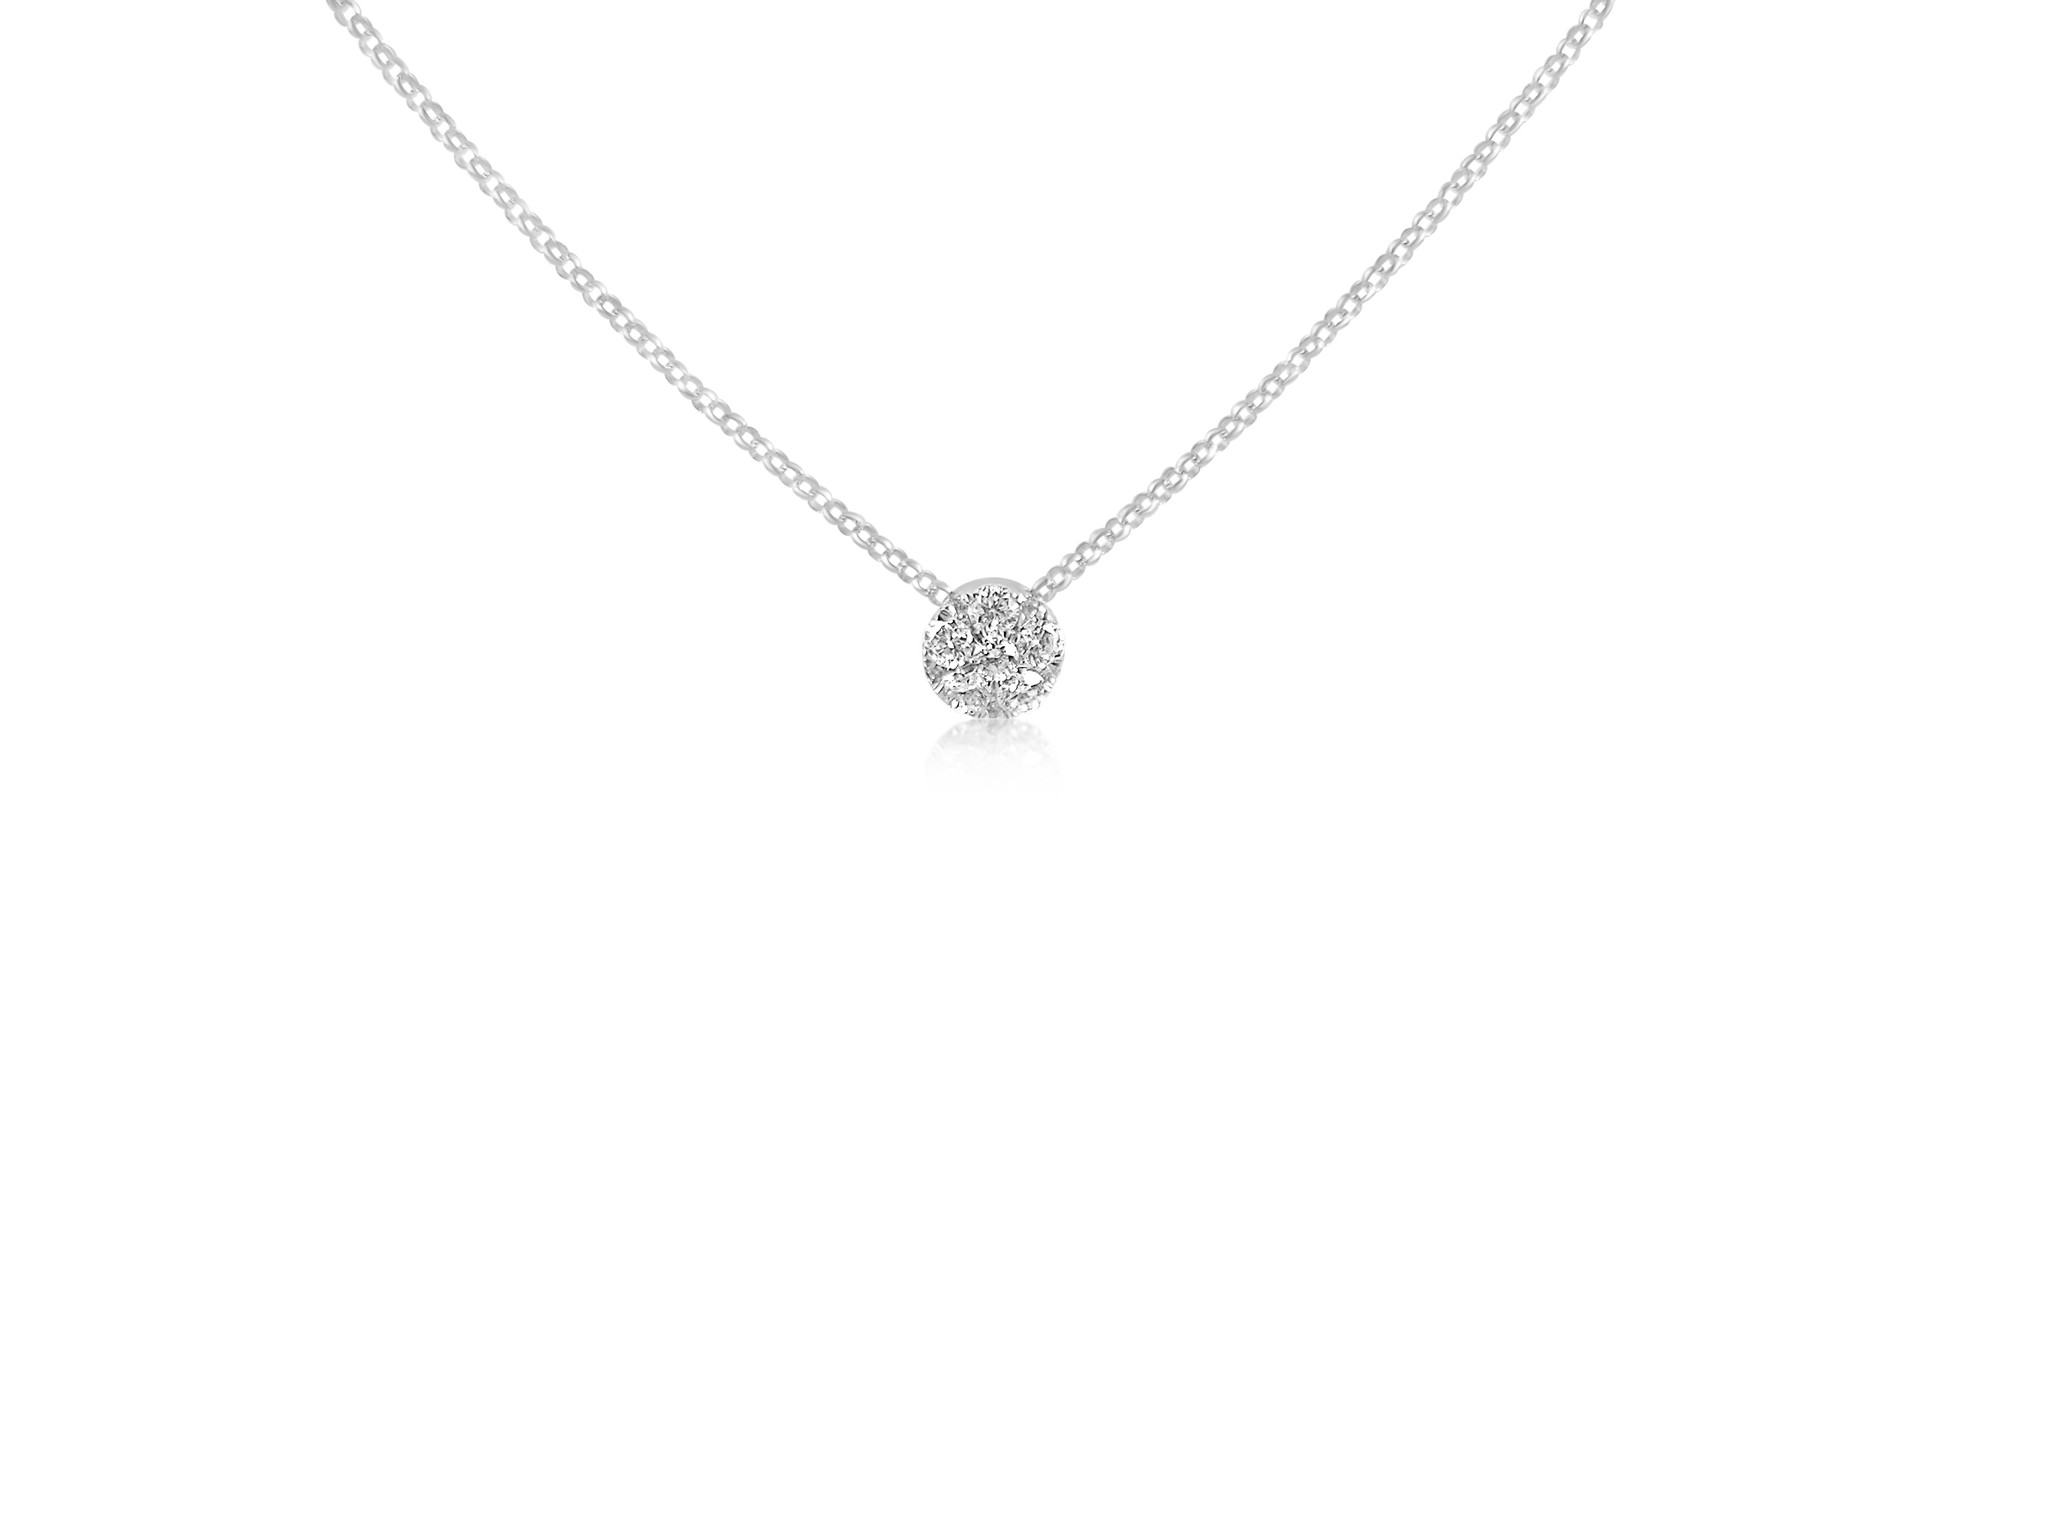 18kt white gold chain with 0.24 ct diamonds pendants